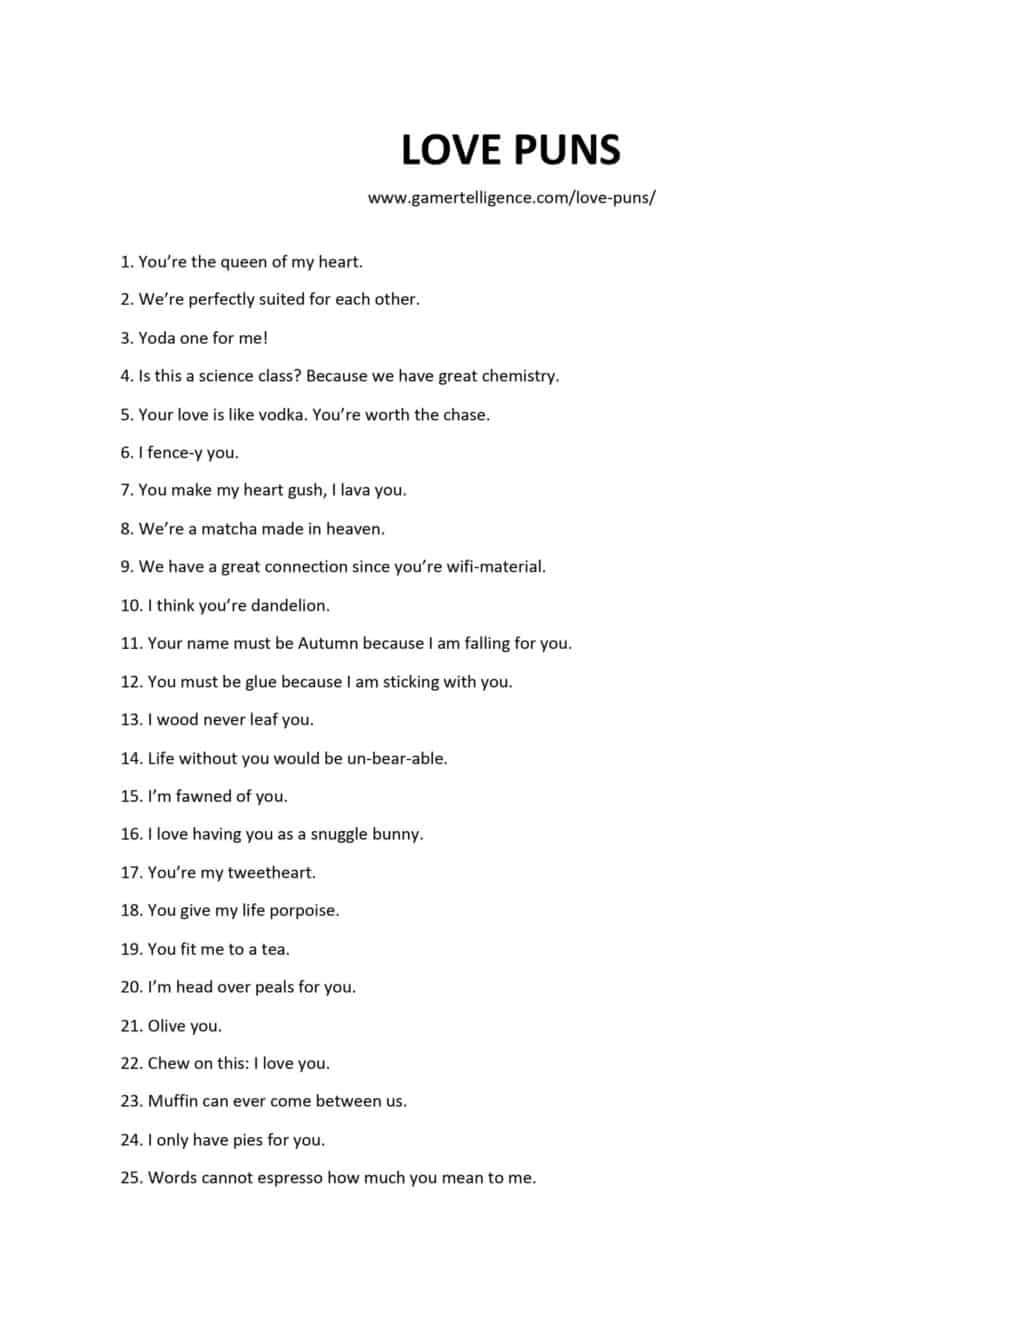 44 Love Puns – A New Way To Confess Your Romantic Feelings